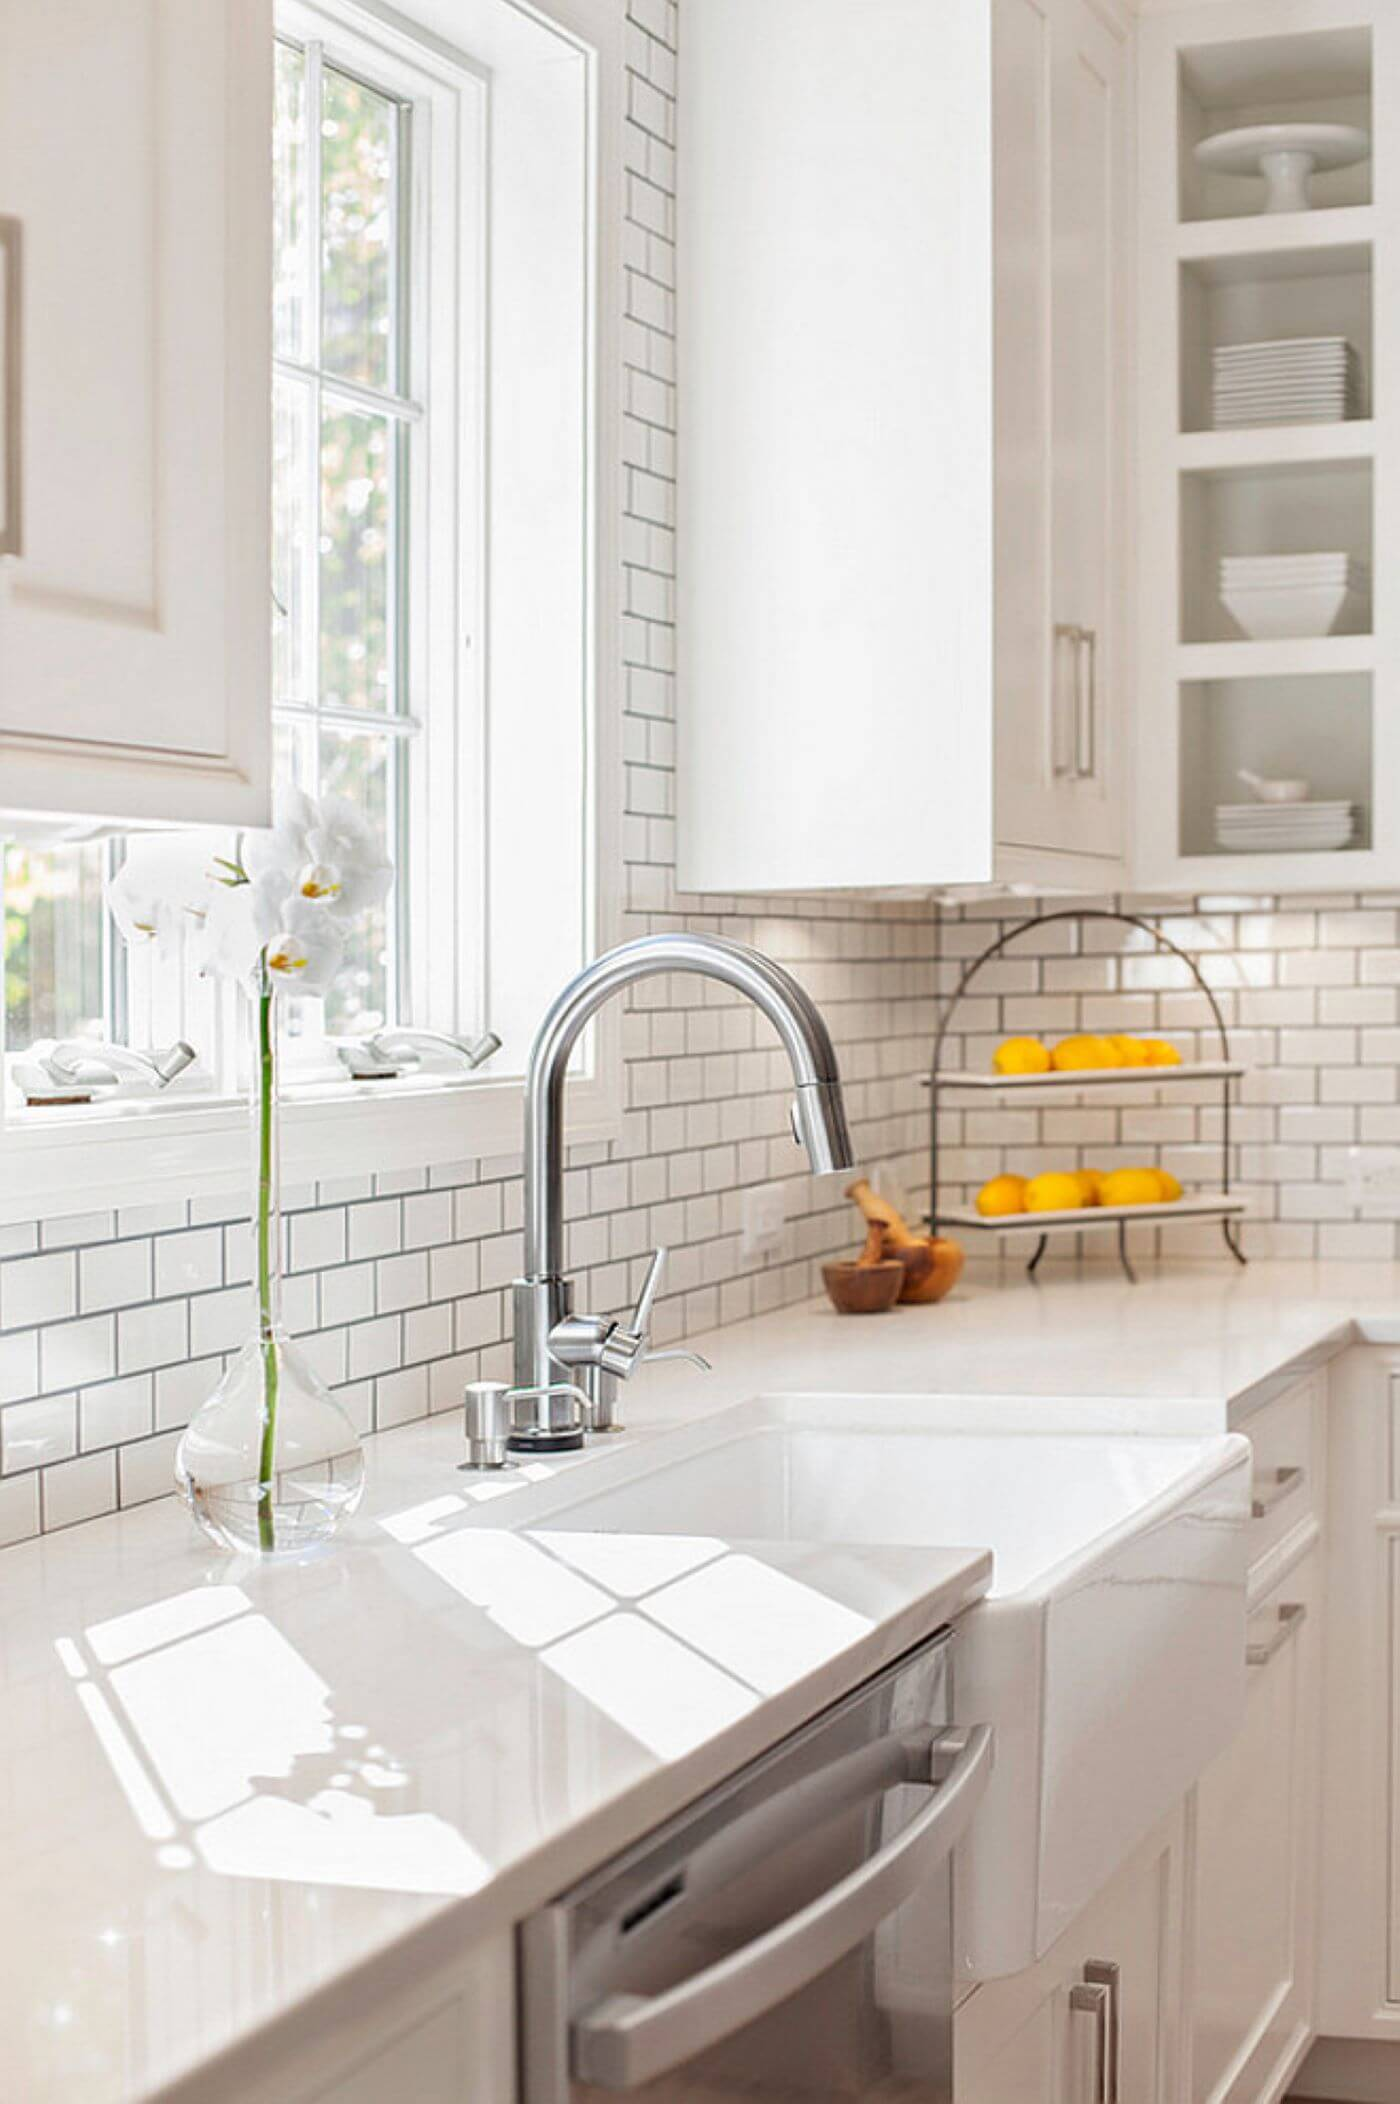 Are Granite Countertops Outdated? - American Farmhouse ... on Farmhouse Granite Countertops  id=49765